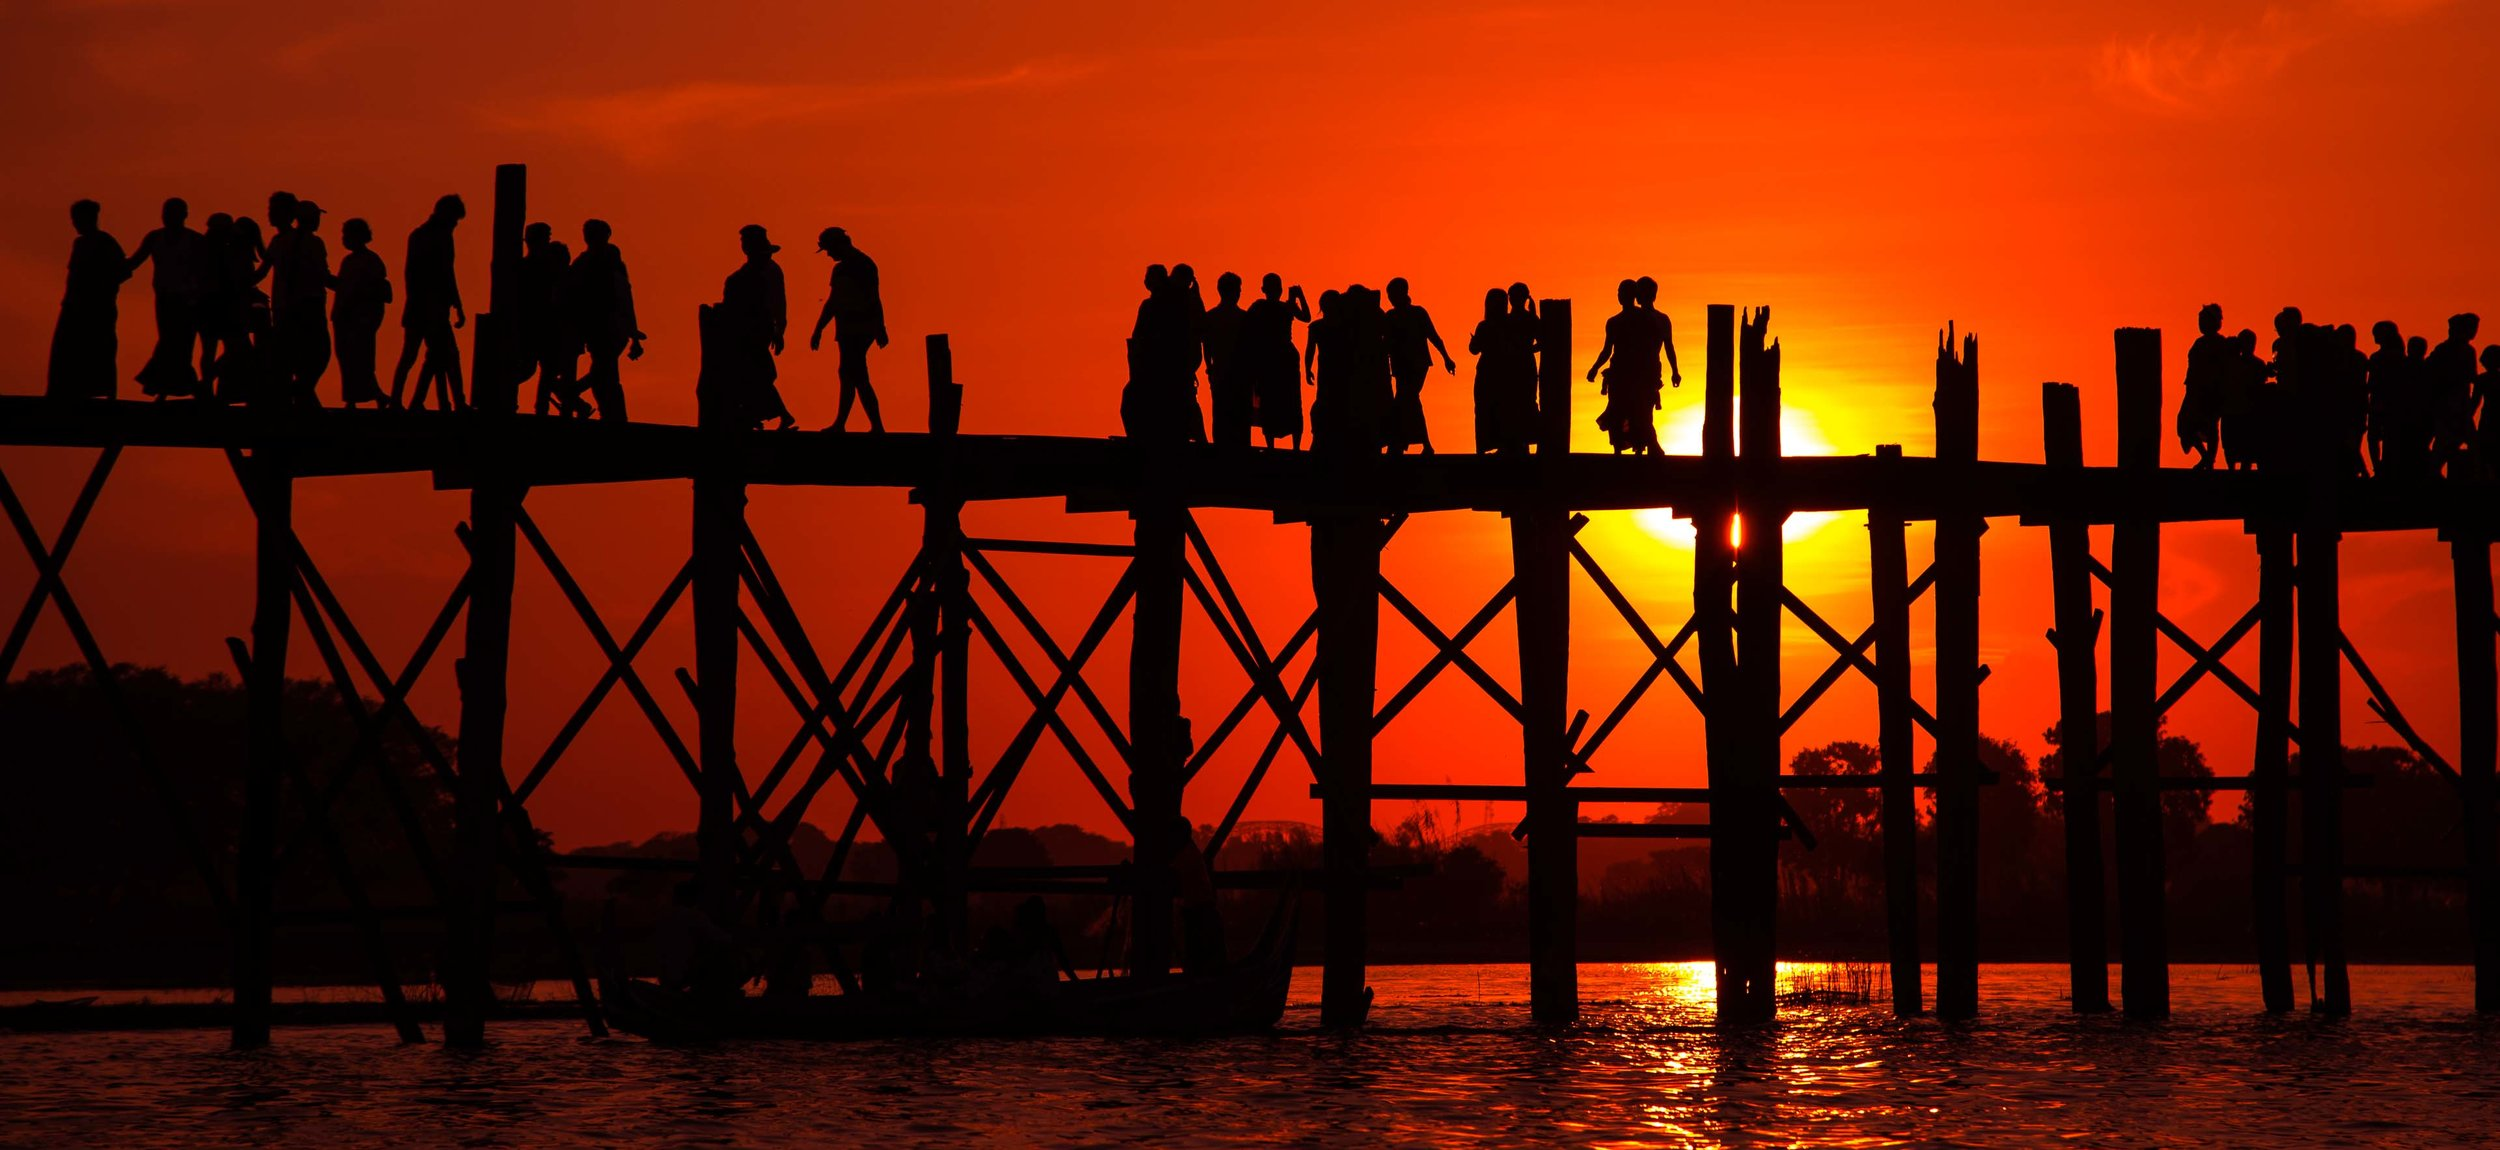 Sunset at the U Bein Bridge. Mandalay, Mayanmar 2015